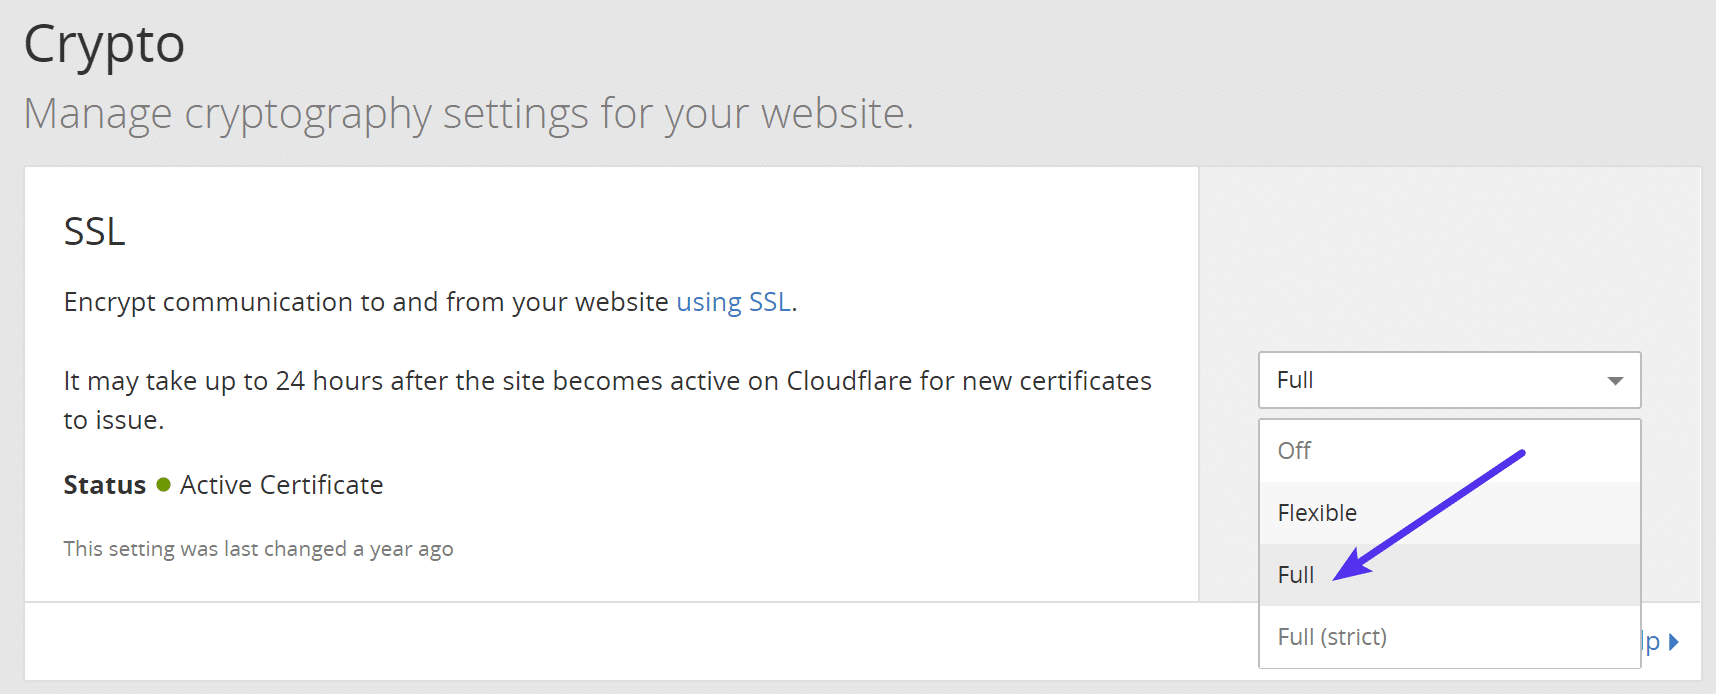 Impostare il crypto level di Cloudflare su full